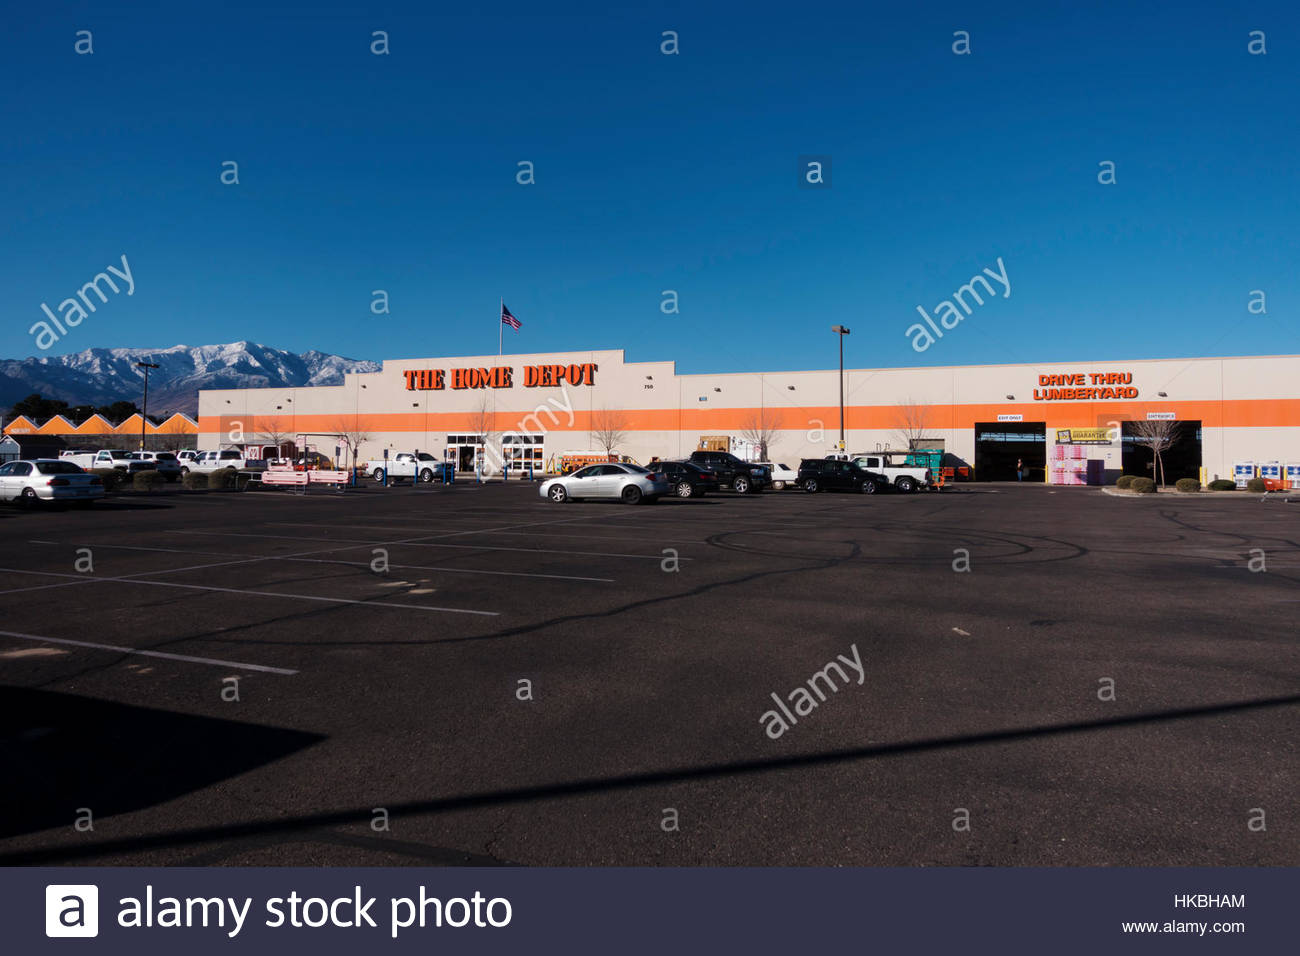 64b69044d72 Arizona Home Depot Store Stock Photos   Arizona Home Depot Store ...